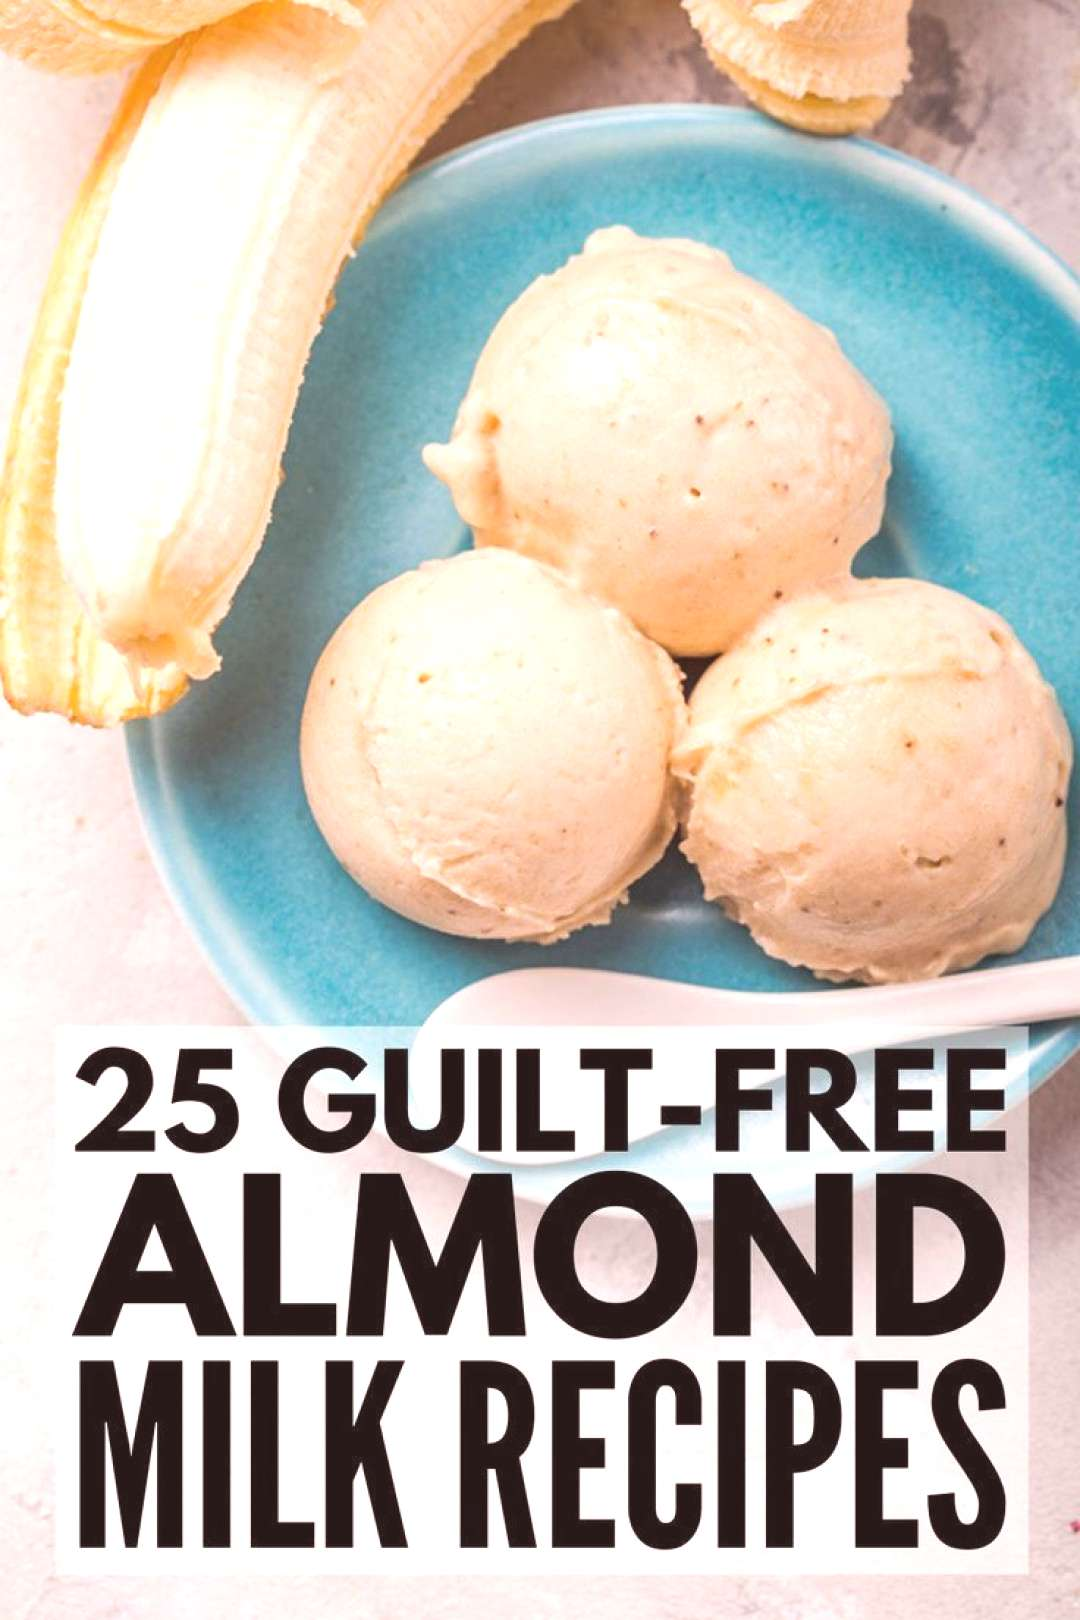 25 Healthy and Delicious Almond Milk Recipes For Weight Loss 25 Almond Milk Recipes | Whether you'r